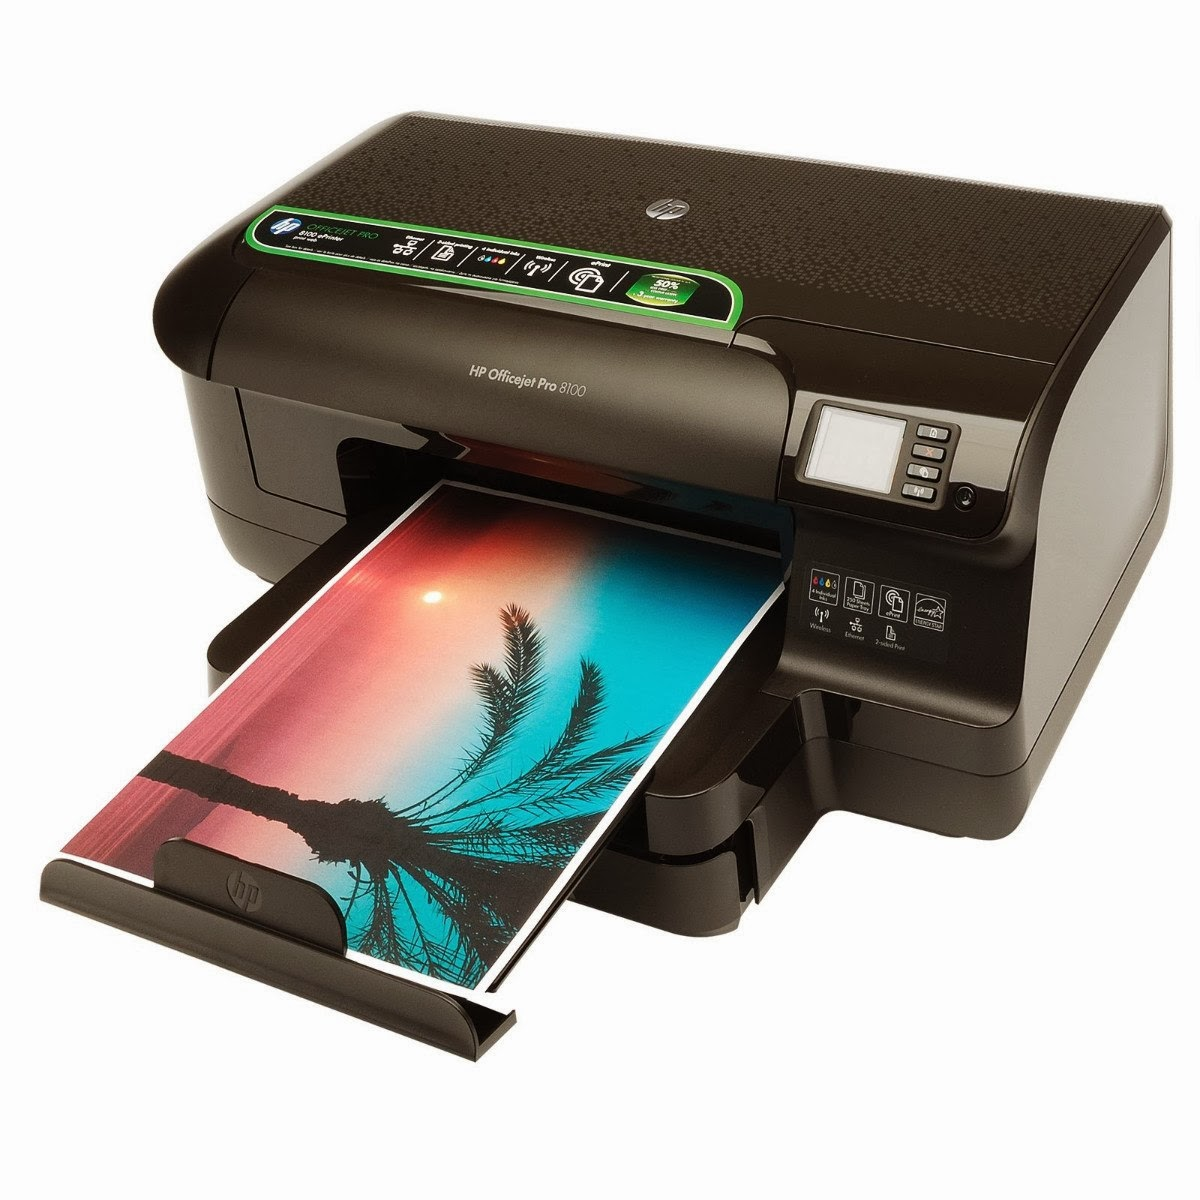 quality color printing meets outstanding productivity Download Driver HP Officejet 8100